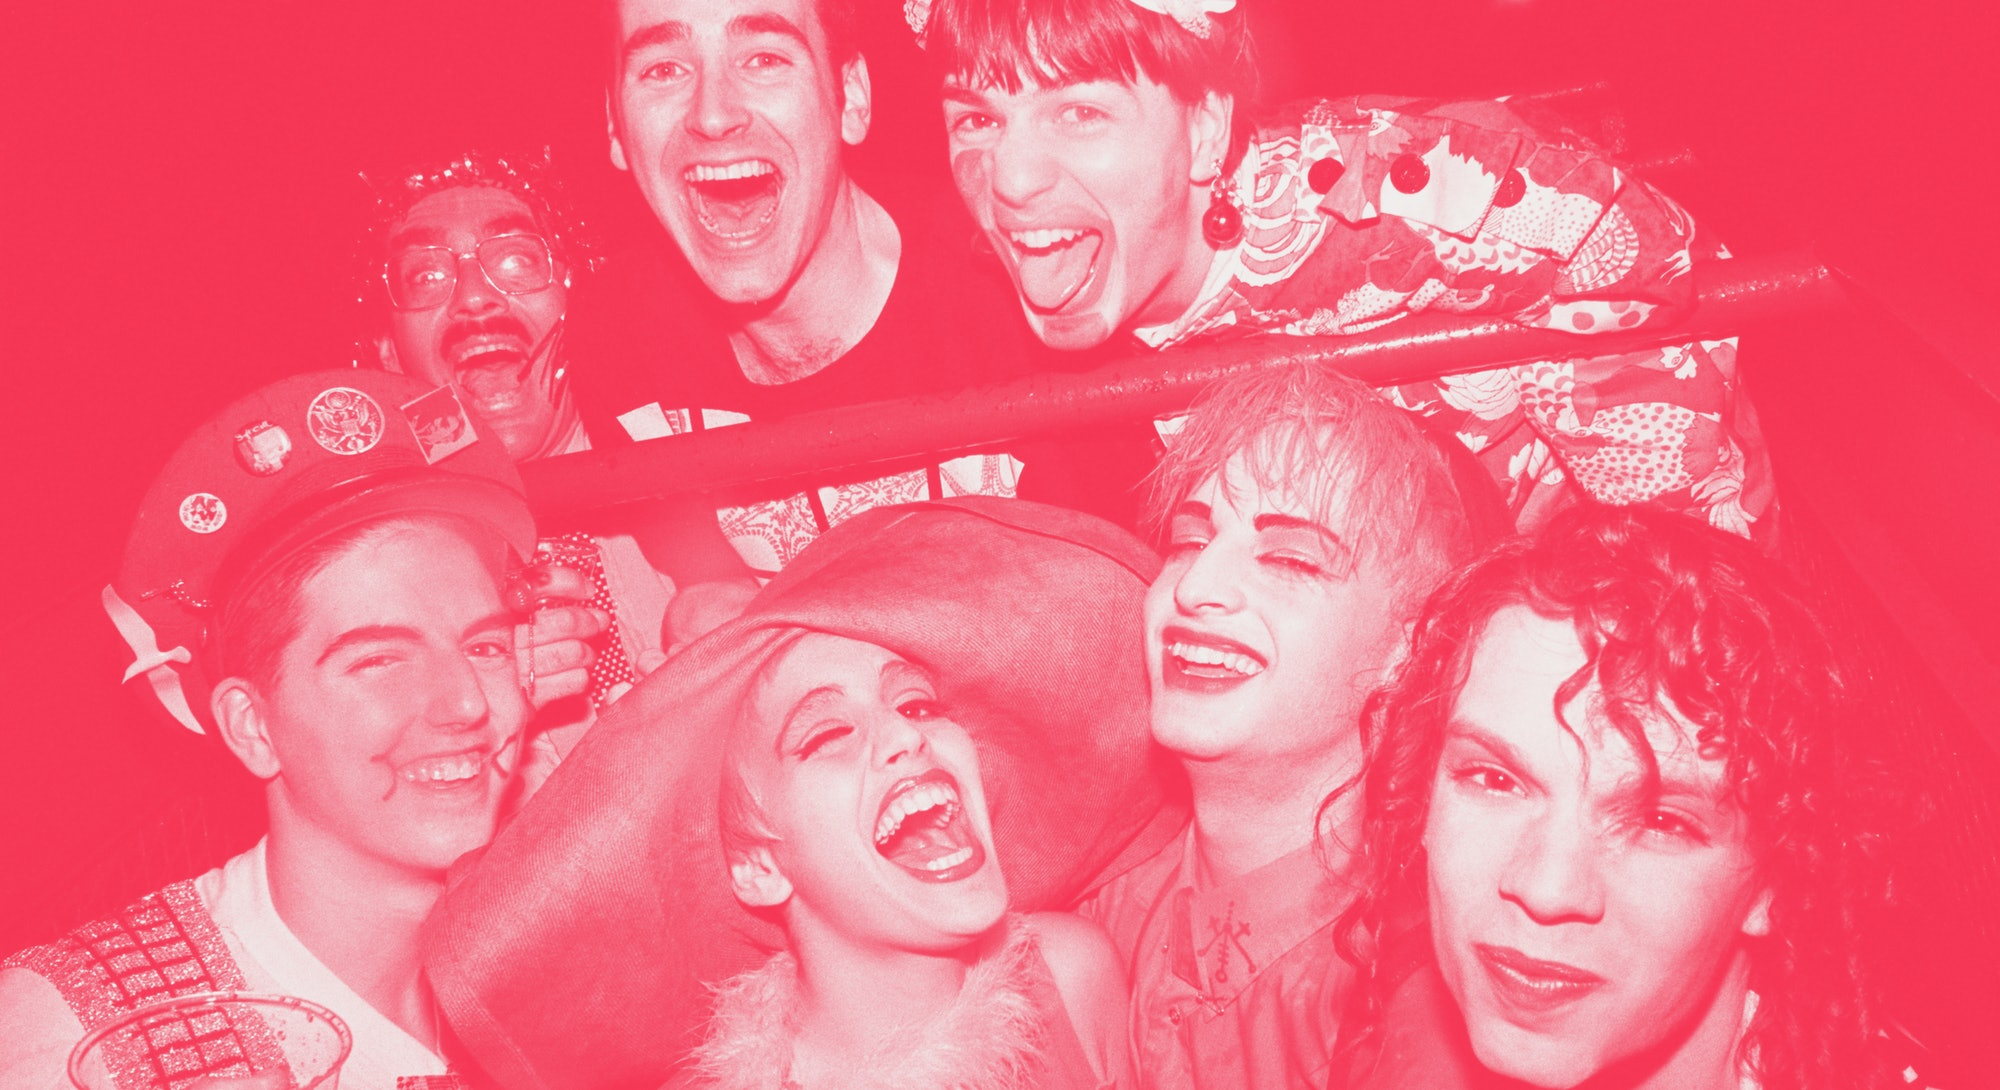 NEW YORK - April 29: Michael Alig, top right, poses for a photo with friends, including DJ Larry Tee...